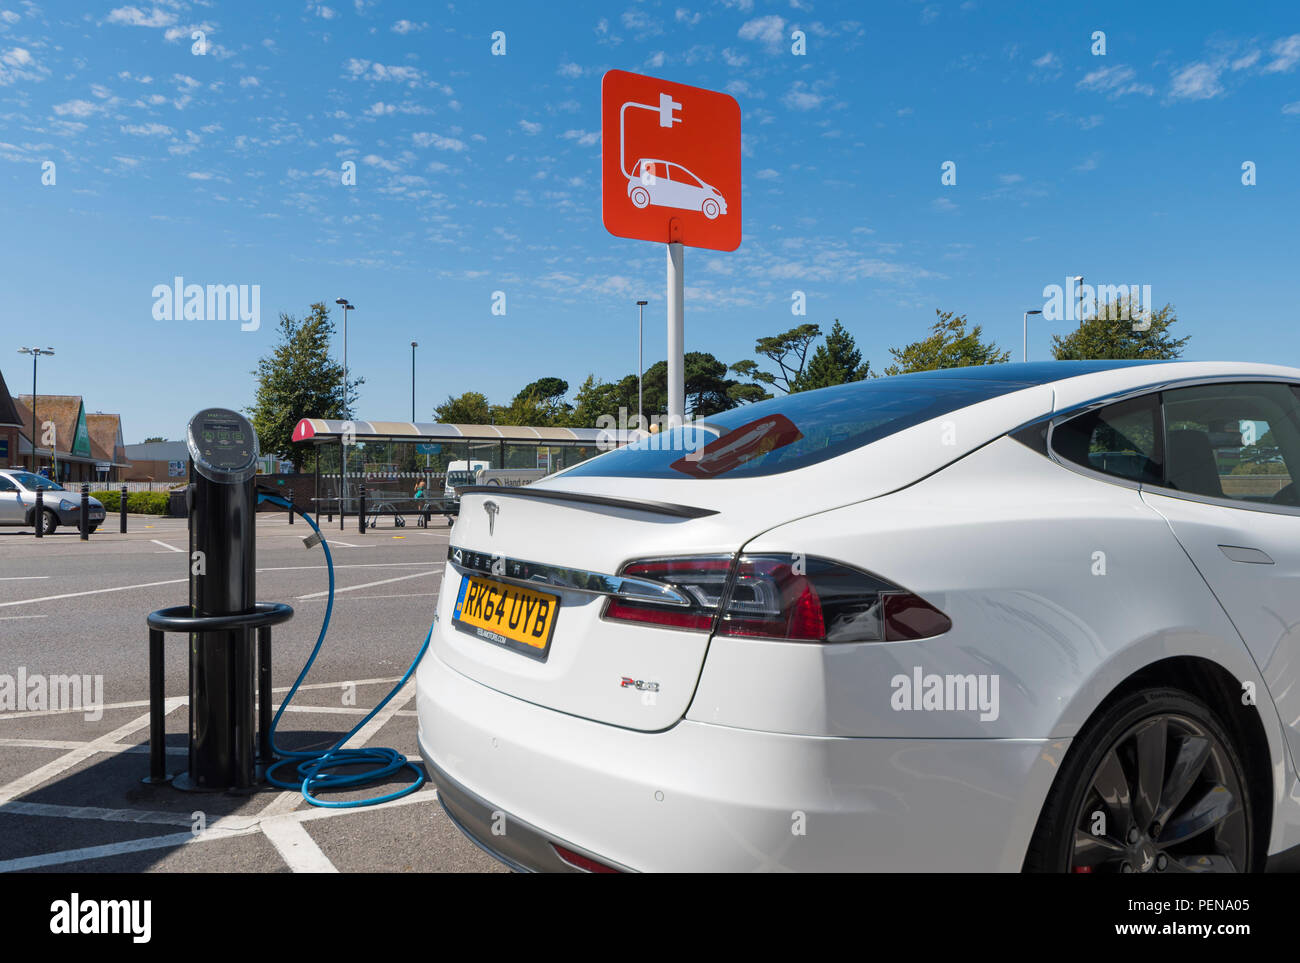 Electric car plugged into a charging point. Electric vehicle connected to a charging port in West Sussex, England, UK. - Stock Image